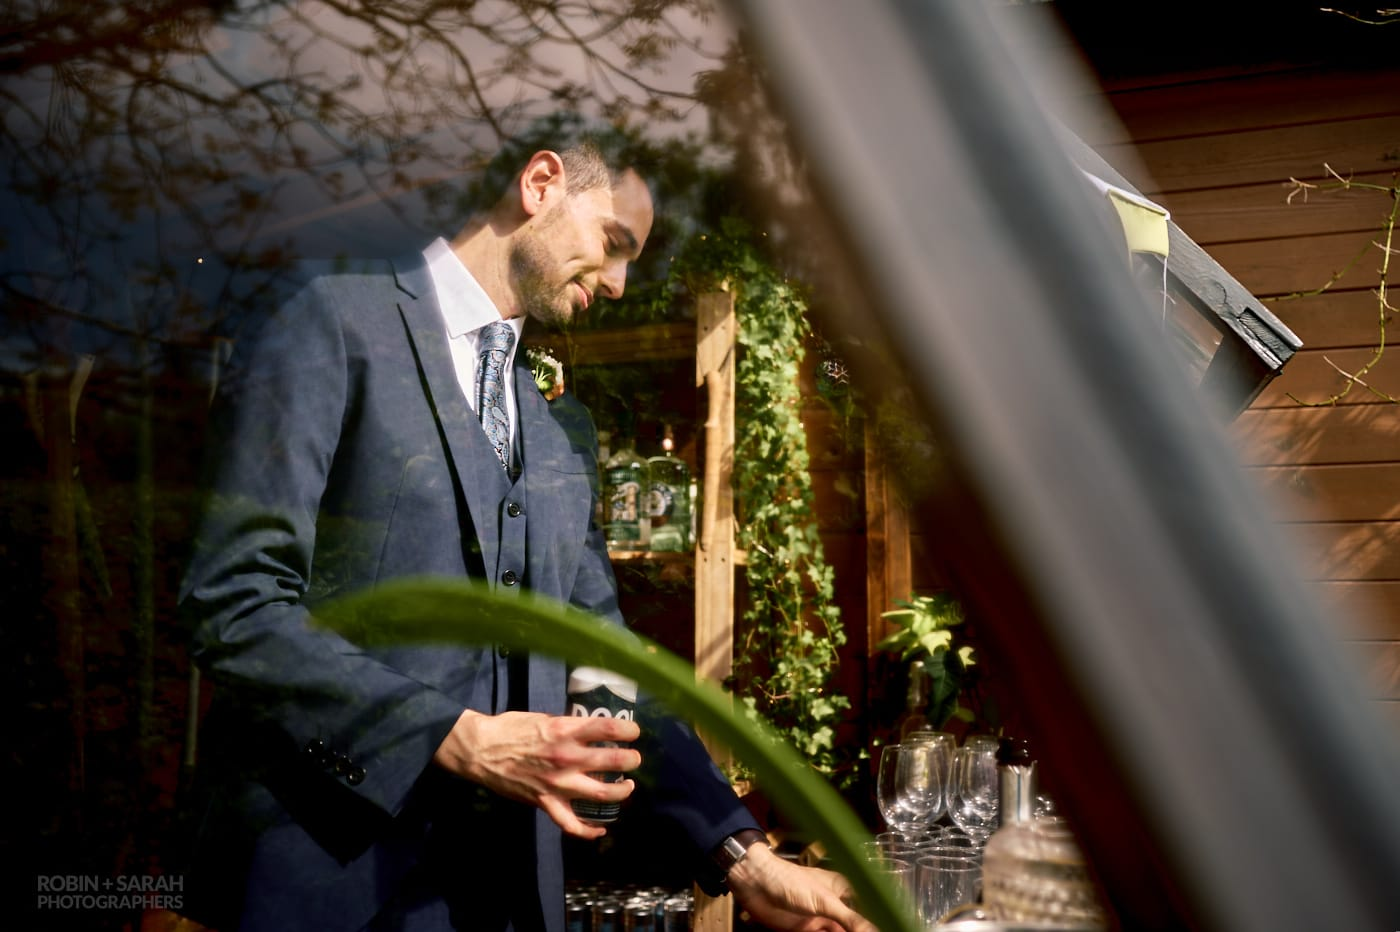 Wedding guests pours himself a drink in makeshift bar